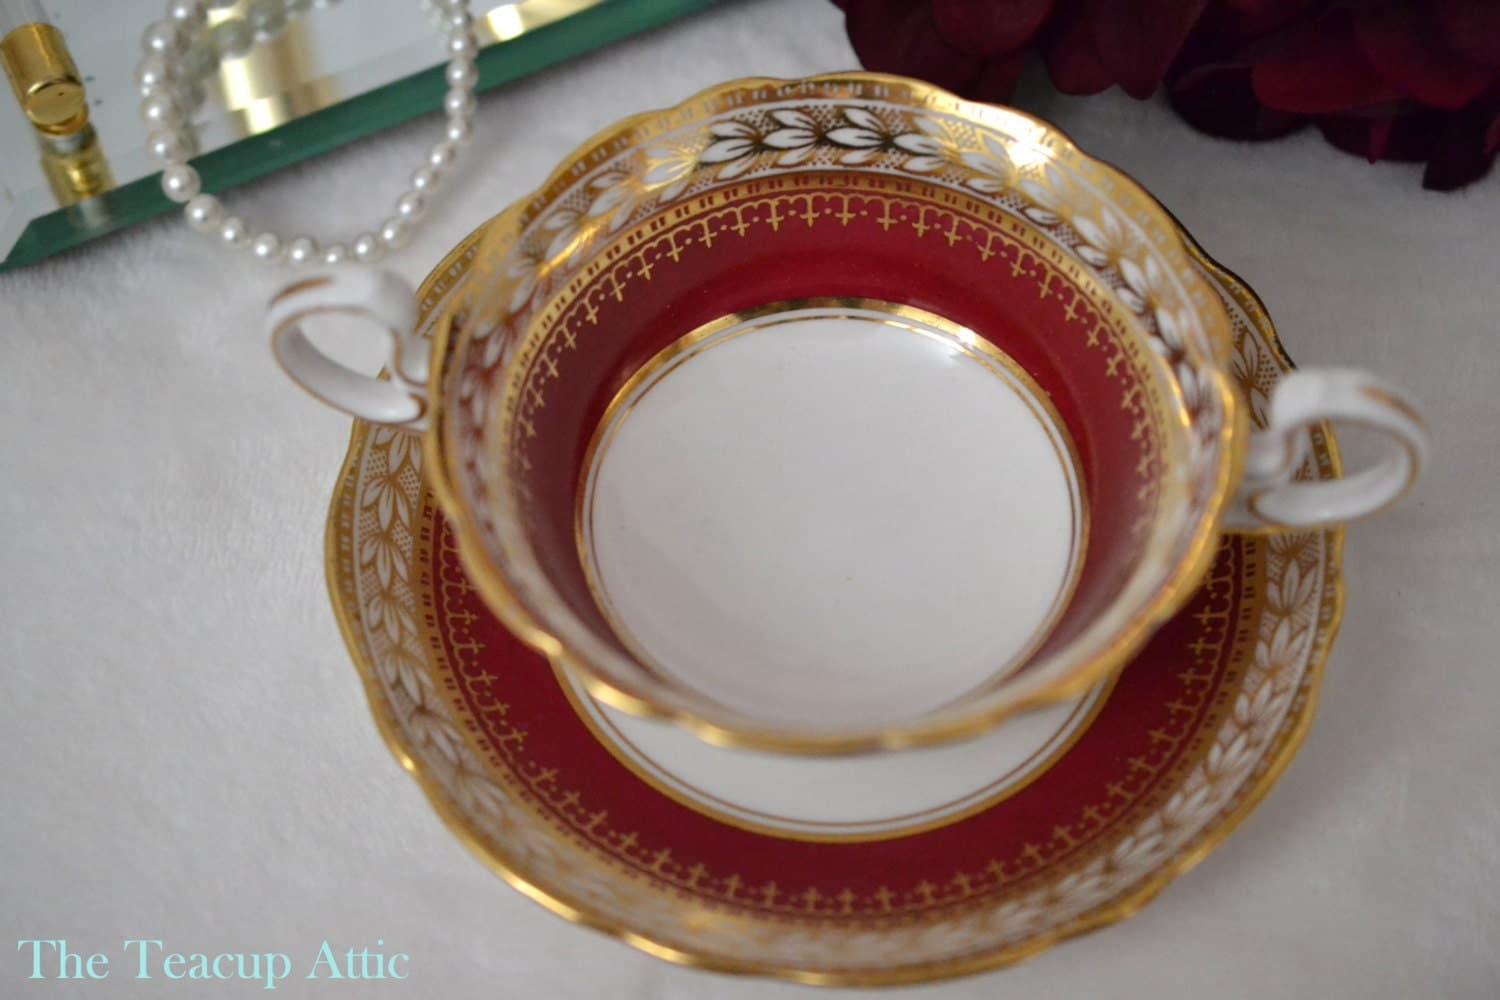 ON SALE Aynsley Red and Gold Double Handled Cream Soup Bowl And Saucer, Aynsley Pattern 6692, Elegant English Bone China, ca. 1925-1934